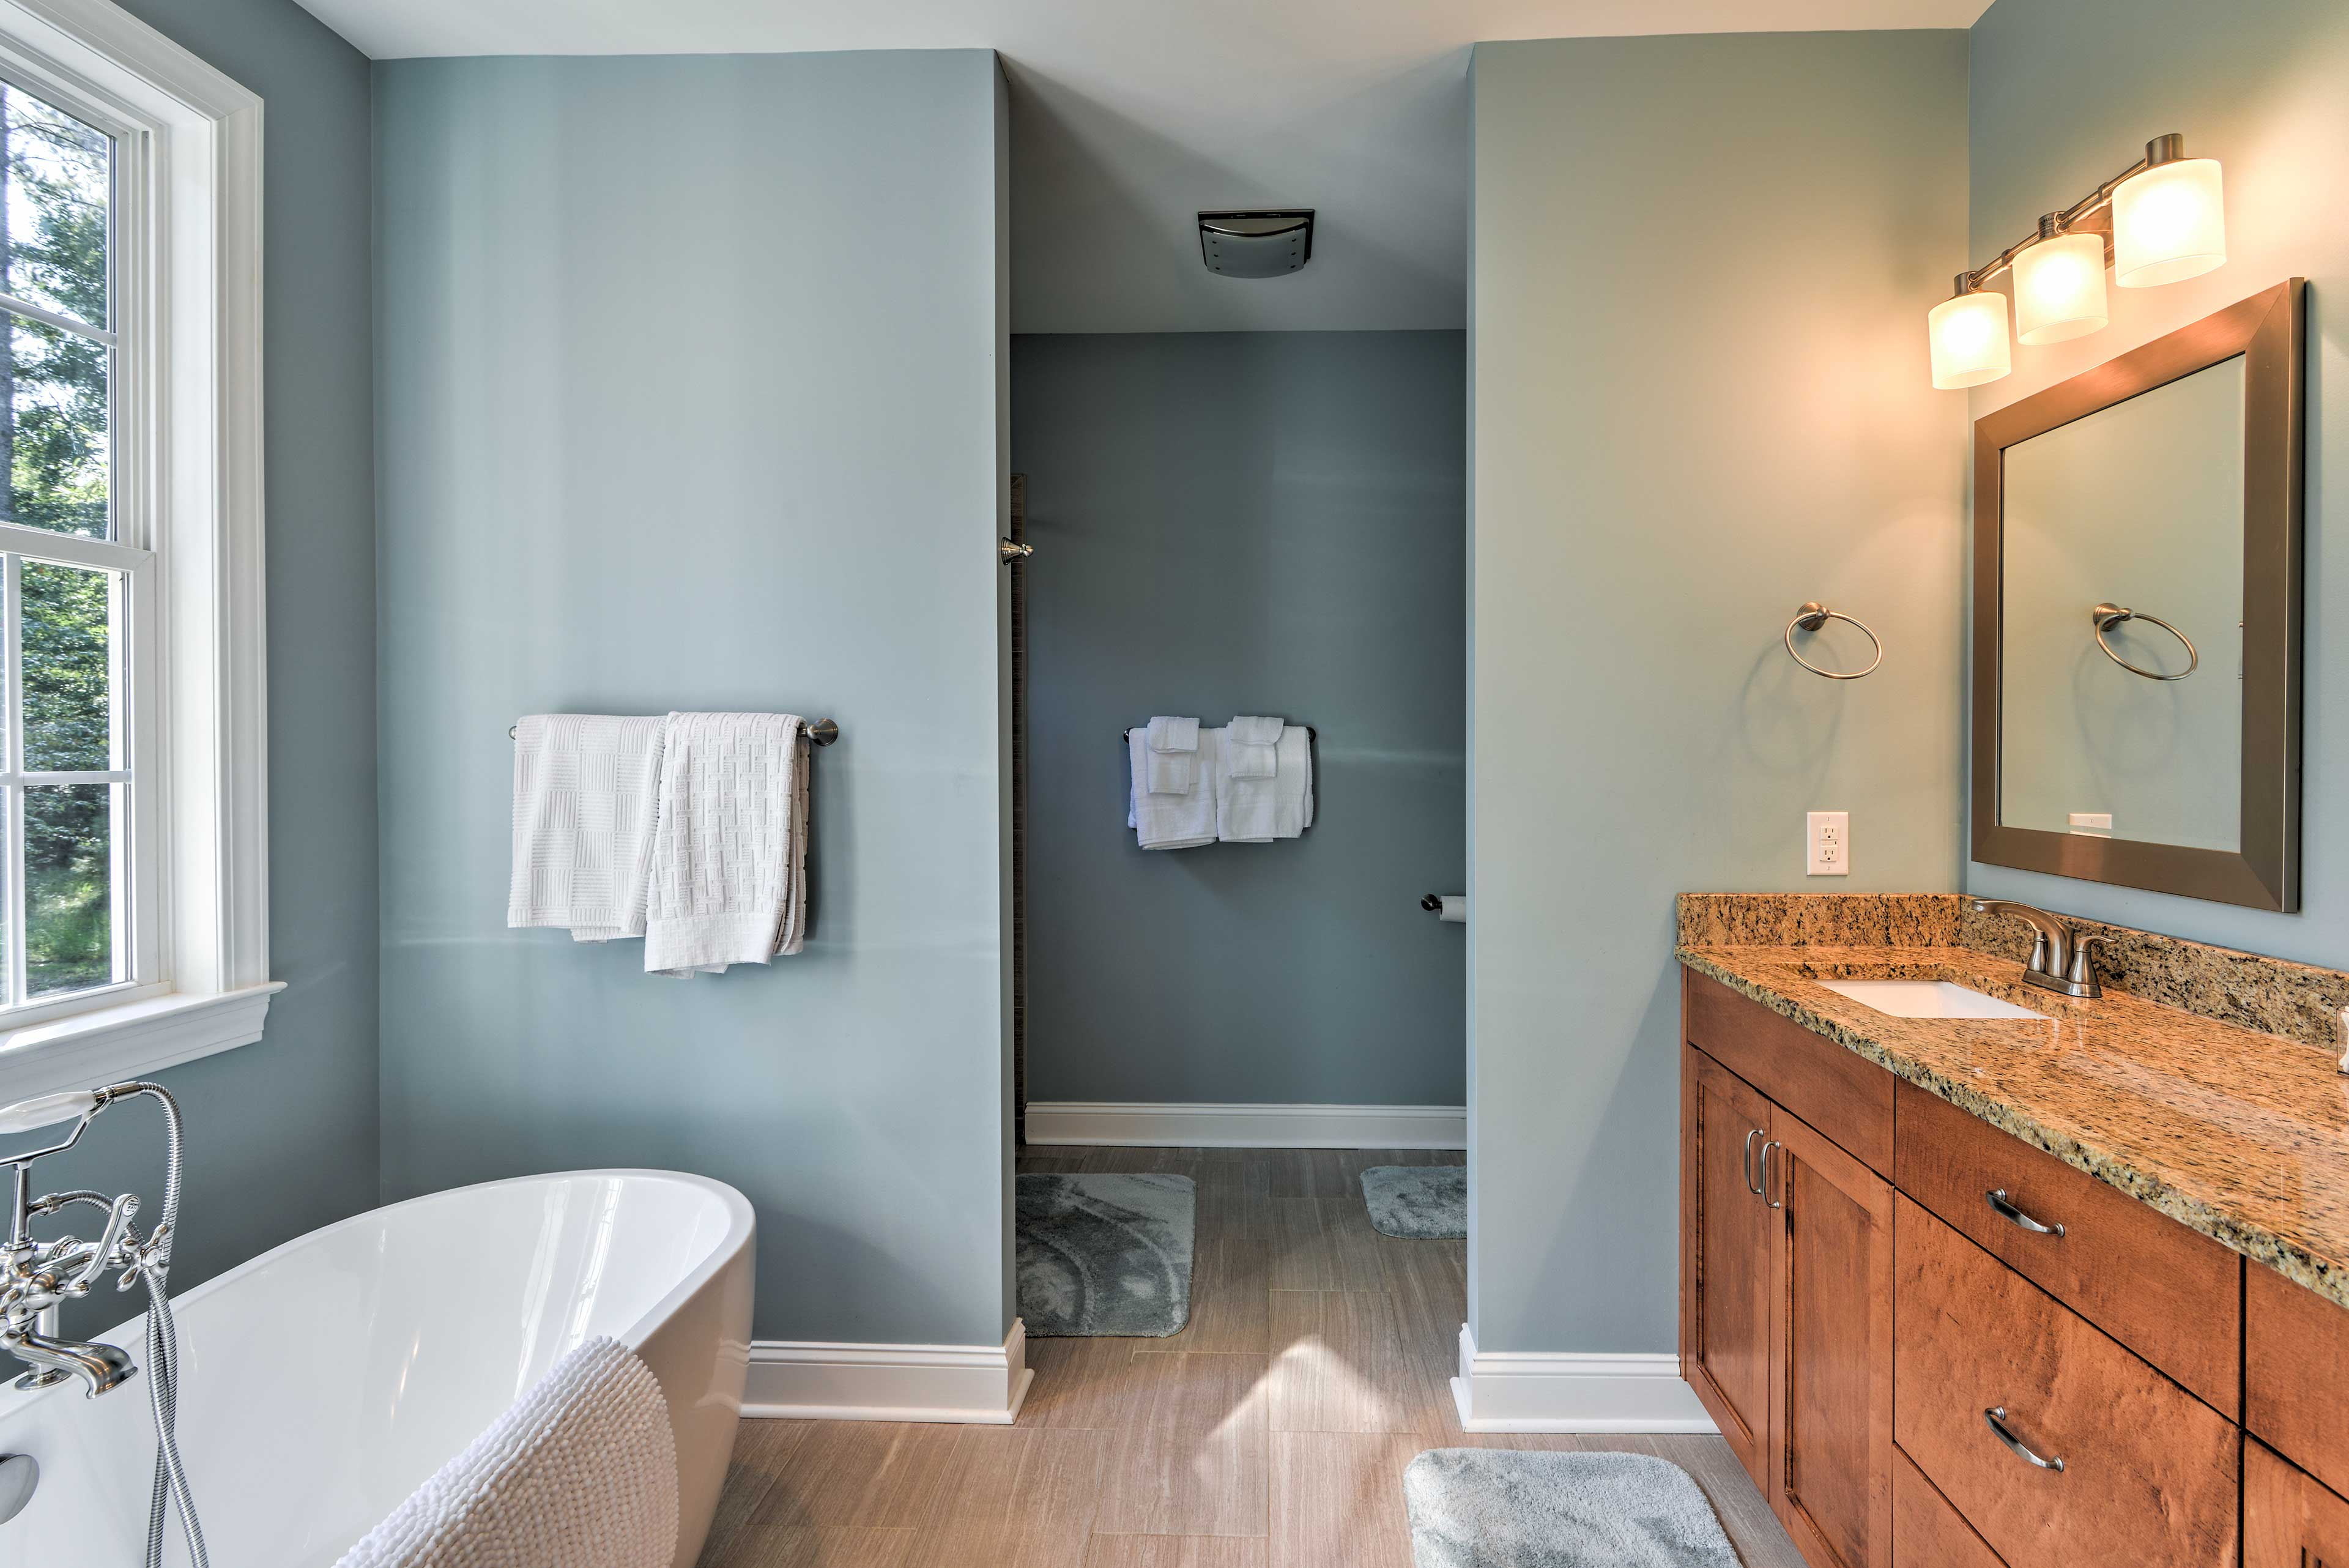 This bathroom is complete with a clawfoot tub, walk-in shower, and granite vanity counters.